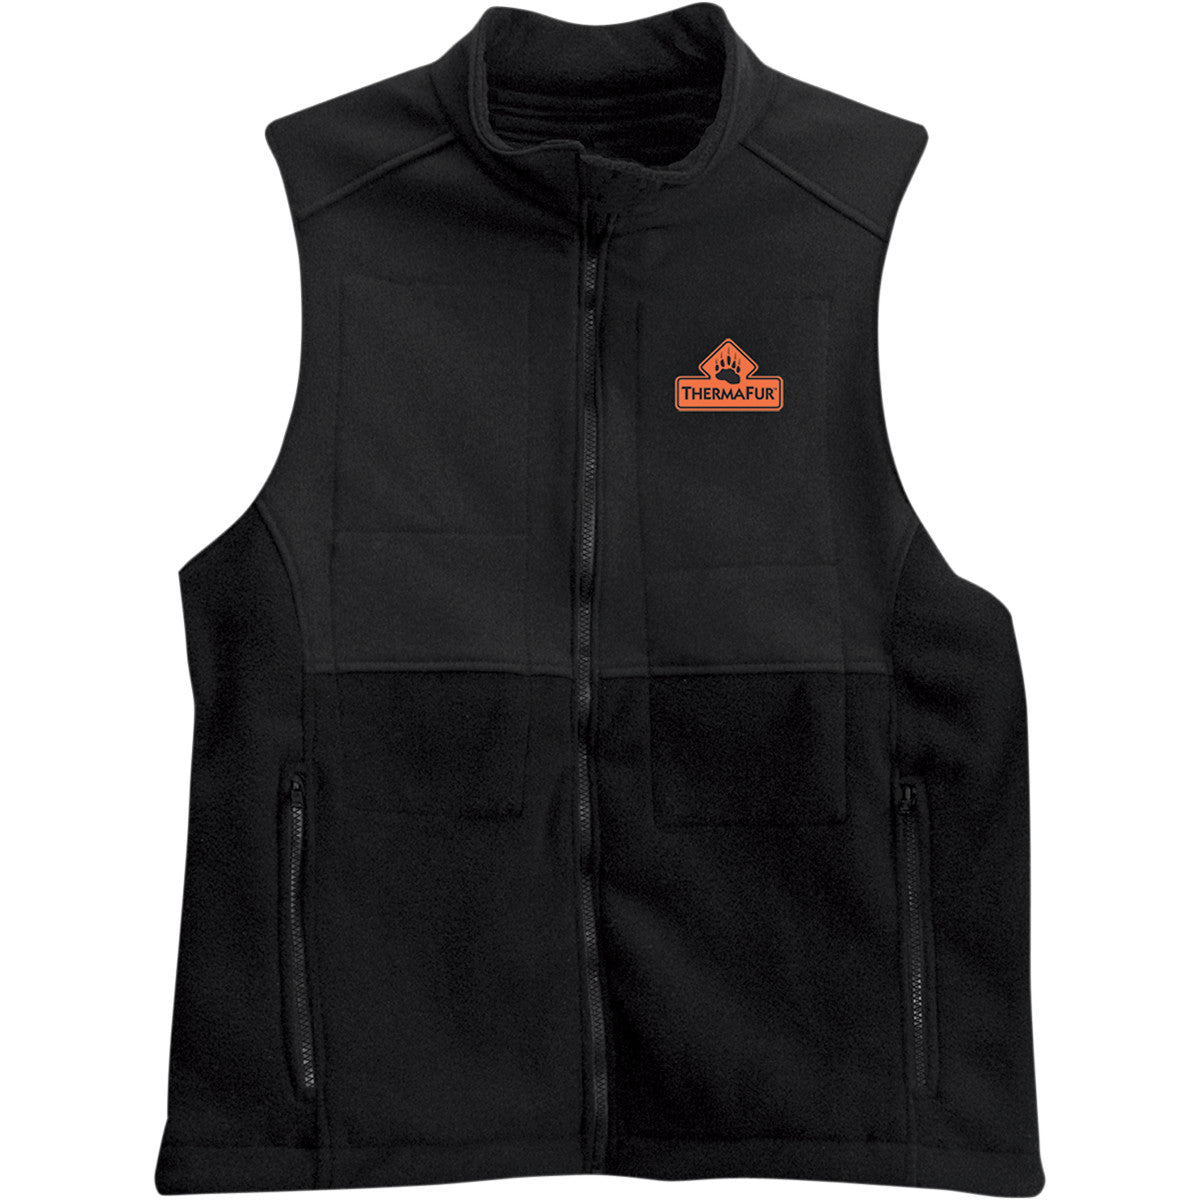 Hyper Kewl Activated Heating Vests